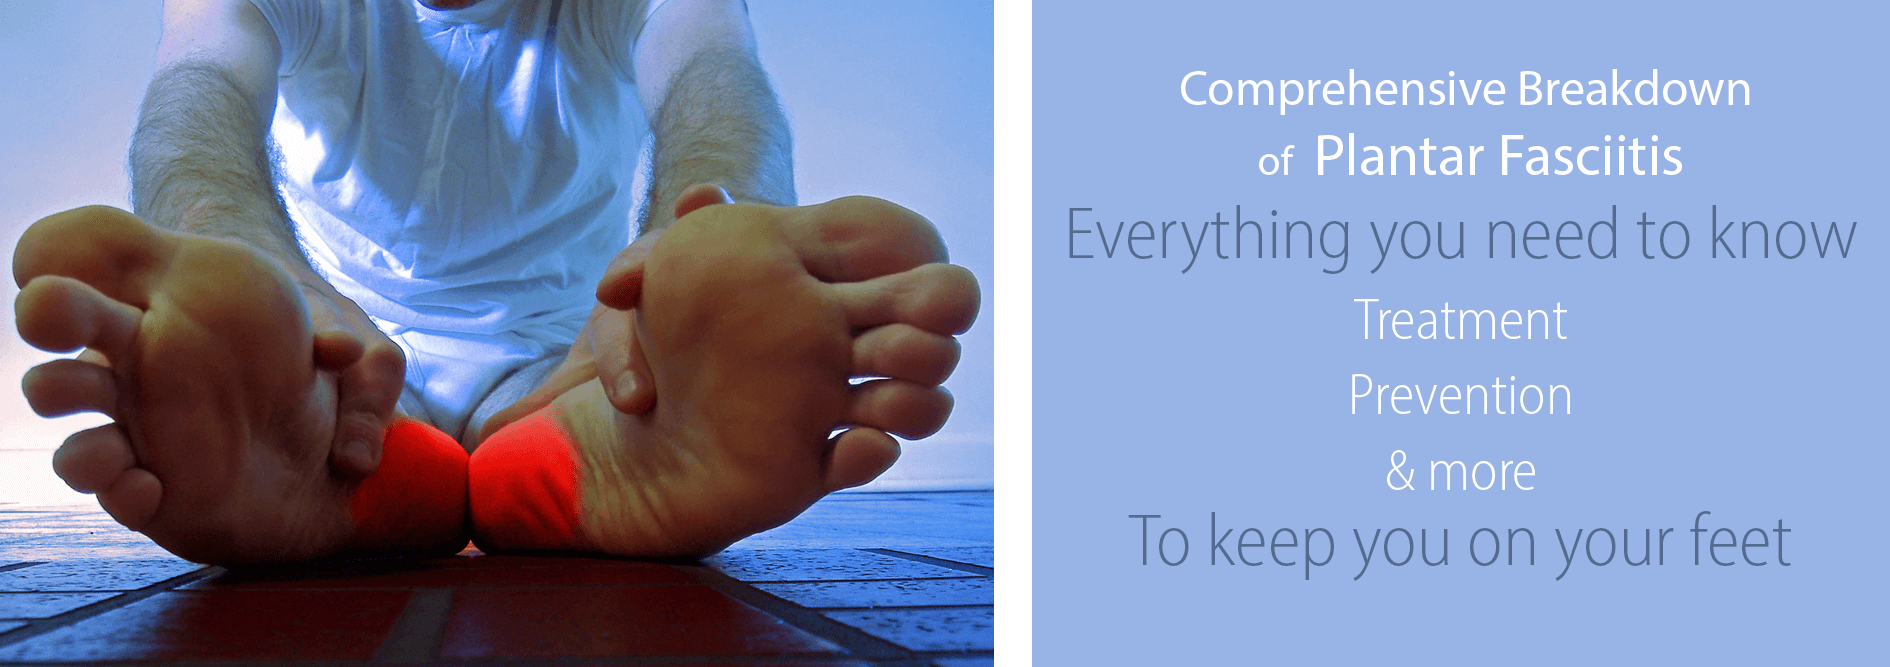 63cb8b4892 The runners' guide to Plantar Fasciitis | RunnerClick